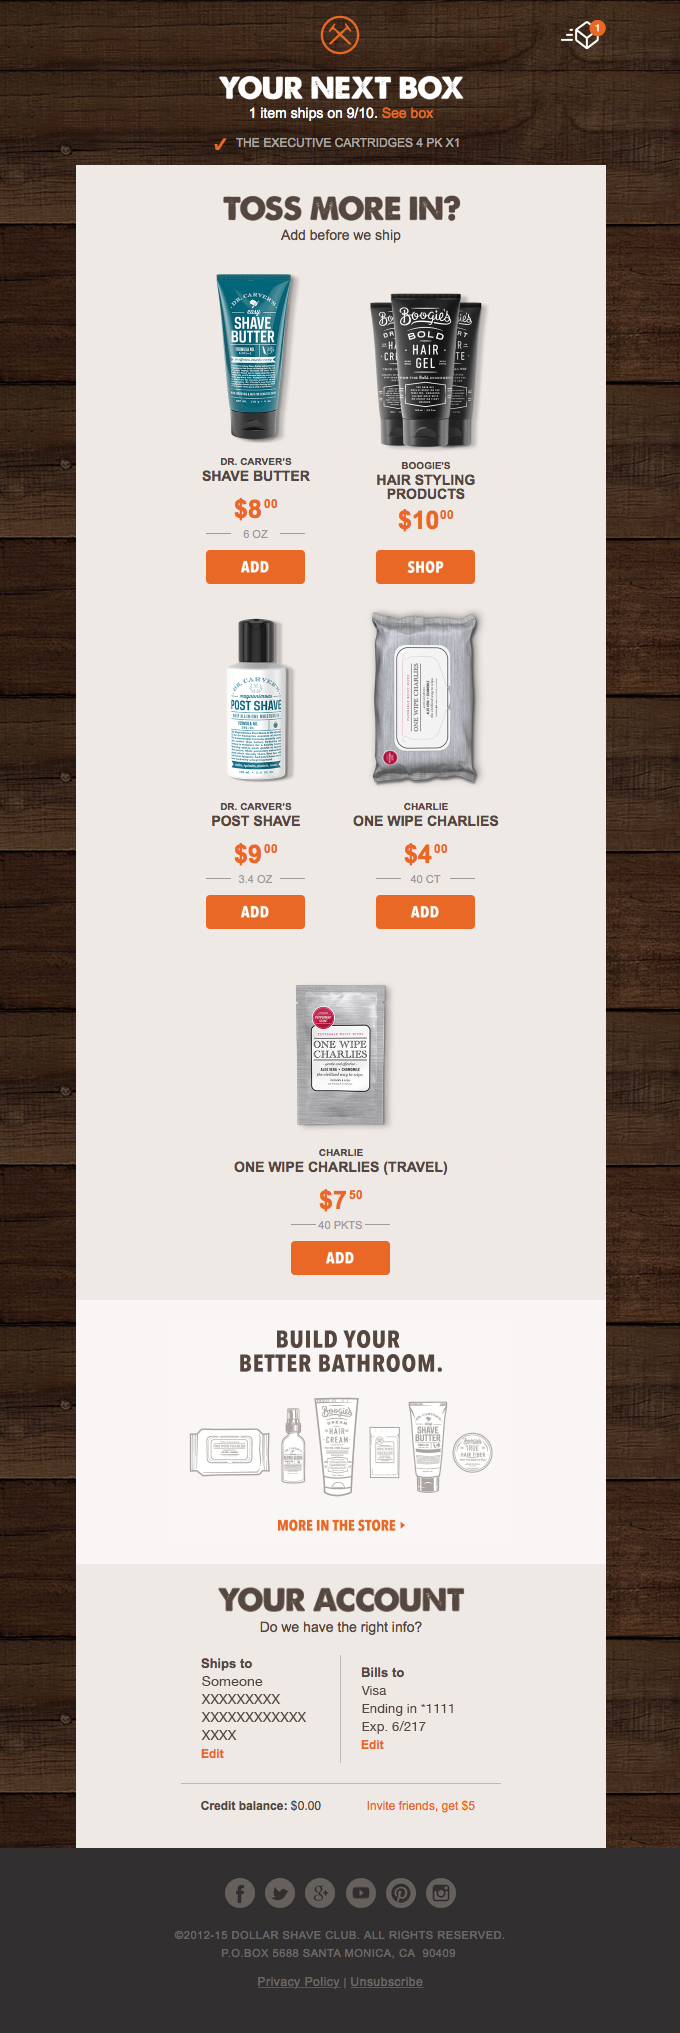 DollarShaveClub_Upsell_timely